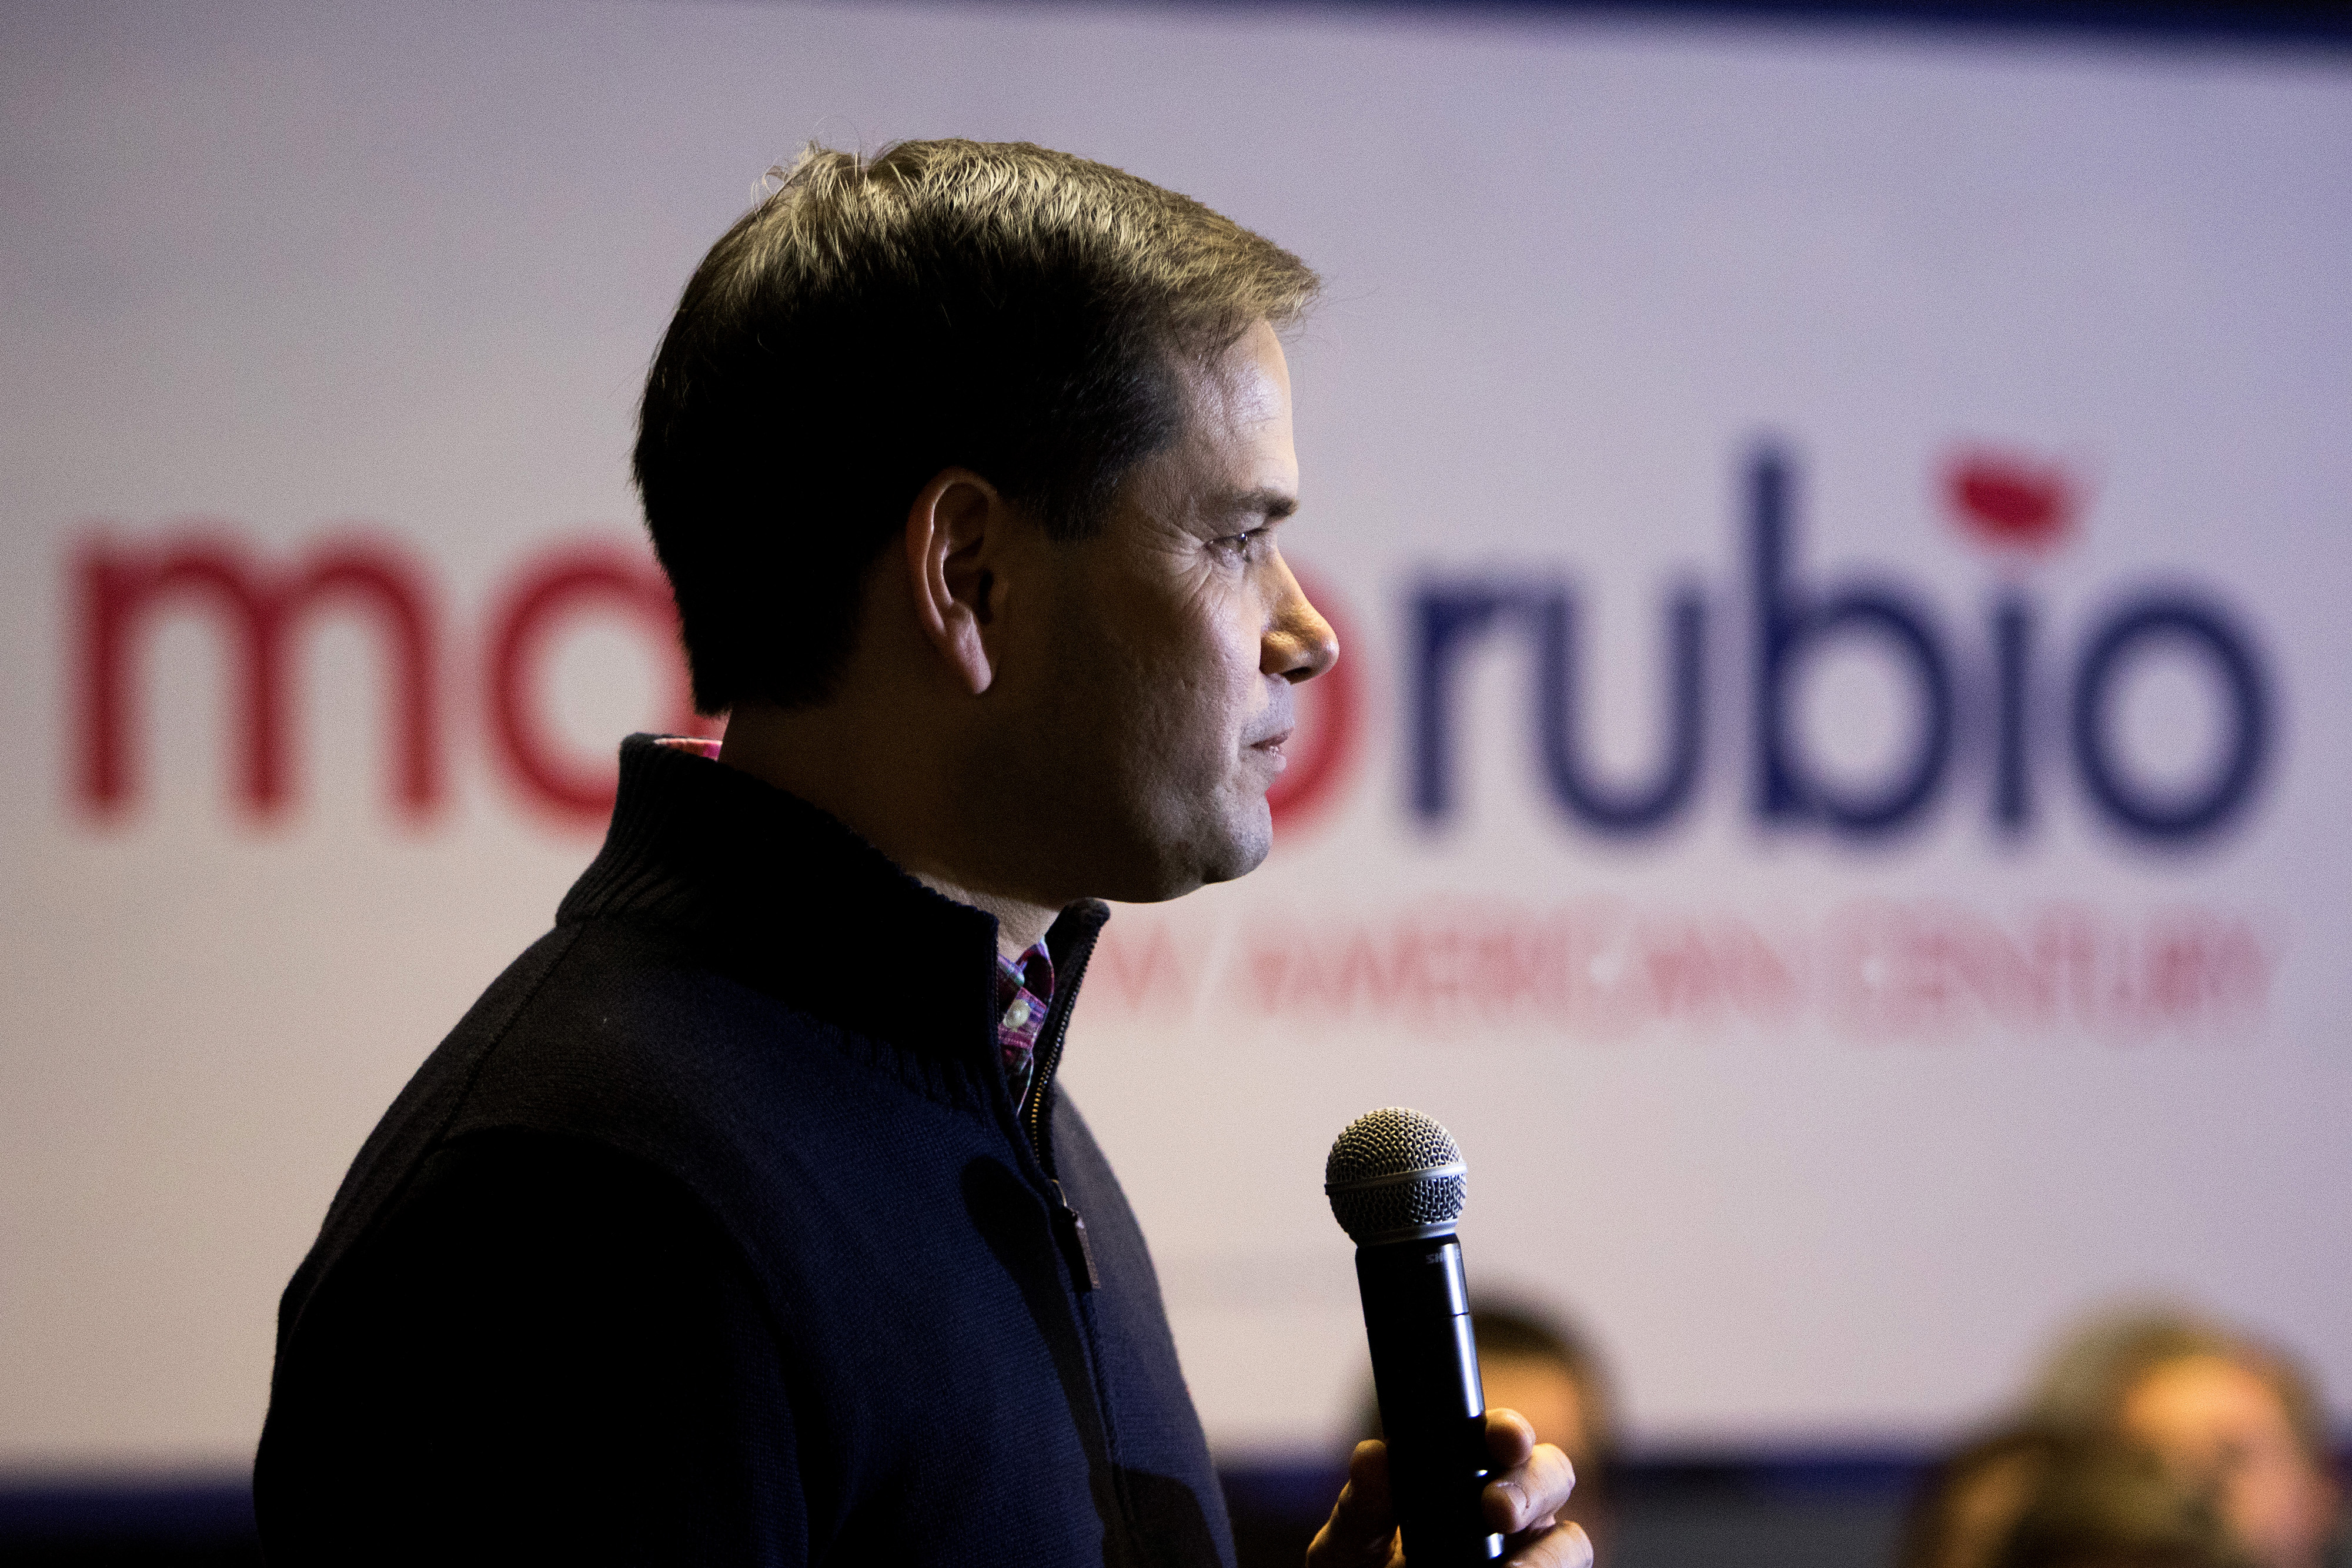 Senator Marco Rubio, a Republican from Florida and 2016 presidential candidate, speaks during a town hall meeting at the Pella Golf and Country Club in Pella, Iowa, U.S., on Wednesday, Dec. 30, 2015. Rubio found himself under siege on two fronts Tuesday over his attendance record in the U.S. Senate as the Florida lawmaker embarked on a swing through snowy Iowa.